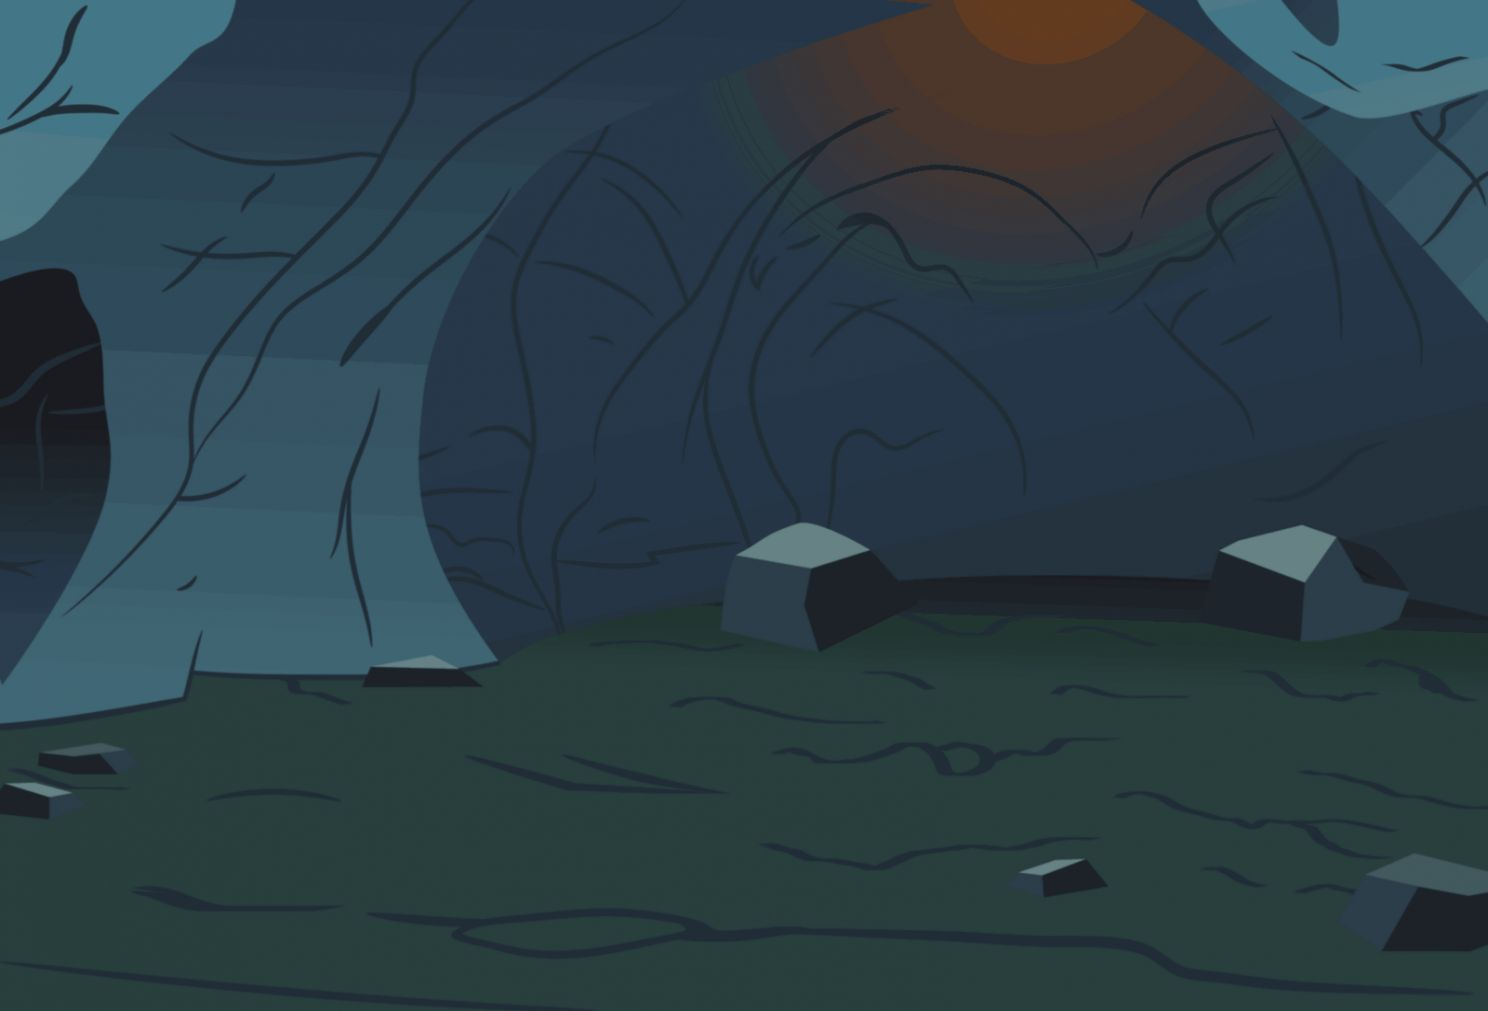 Cave clipart underwater cave. The champion wallpapers